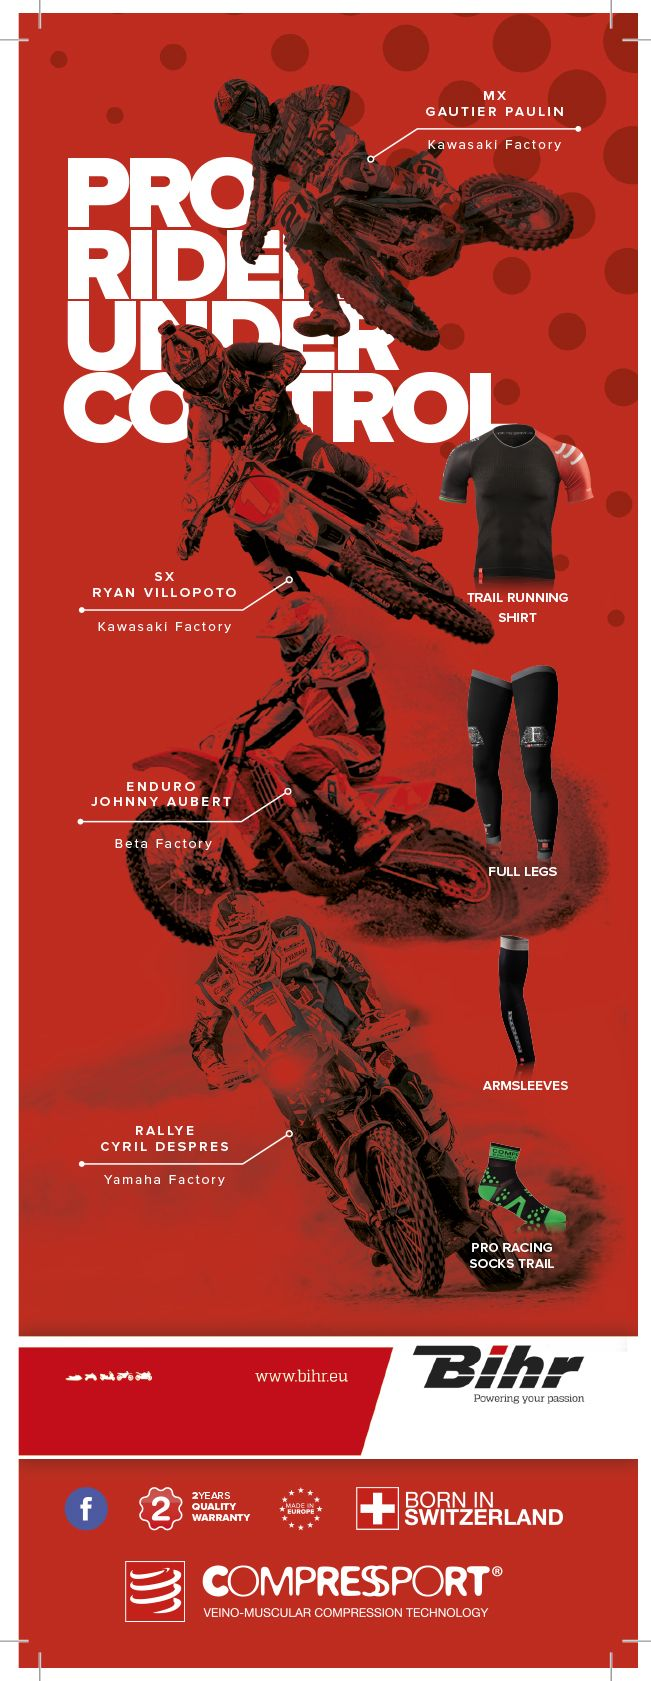 Multisport - Compressioin range - Athletes + Products